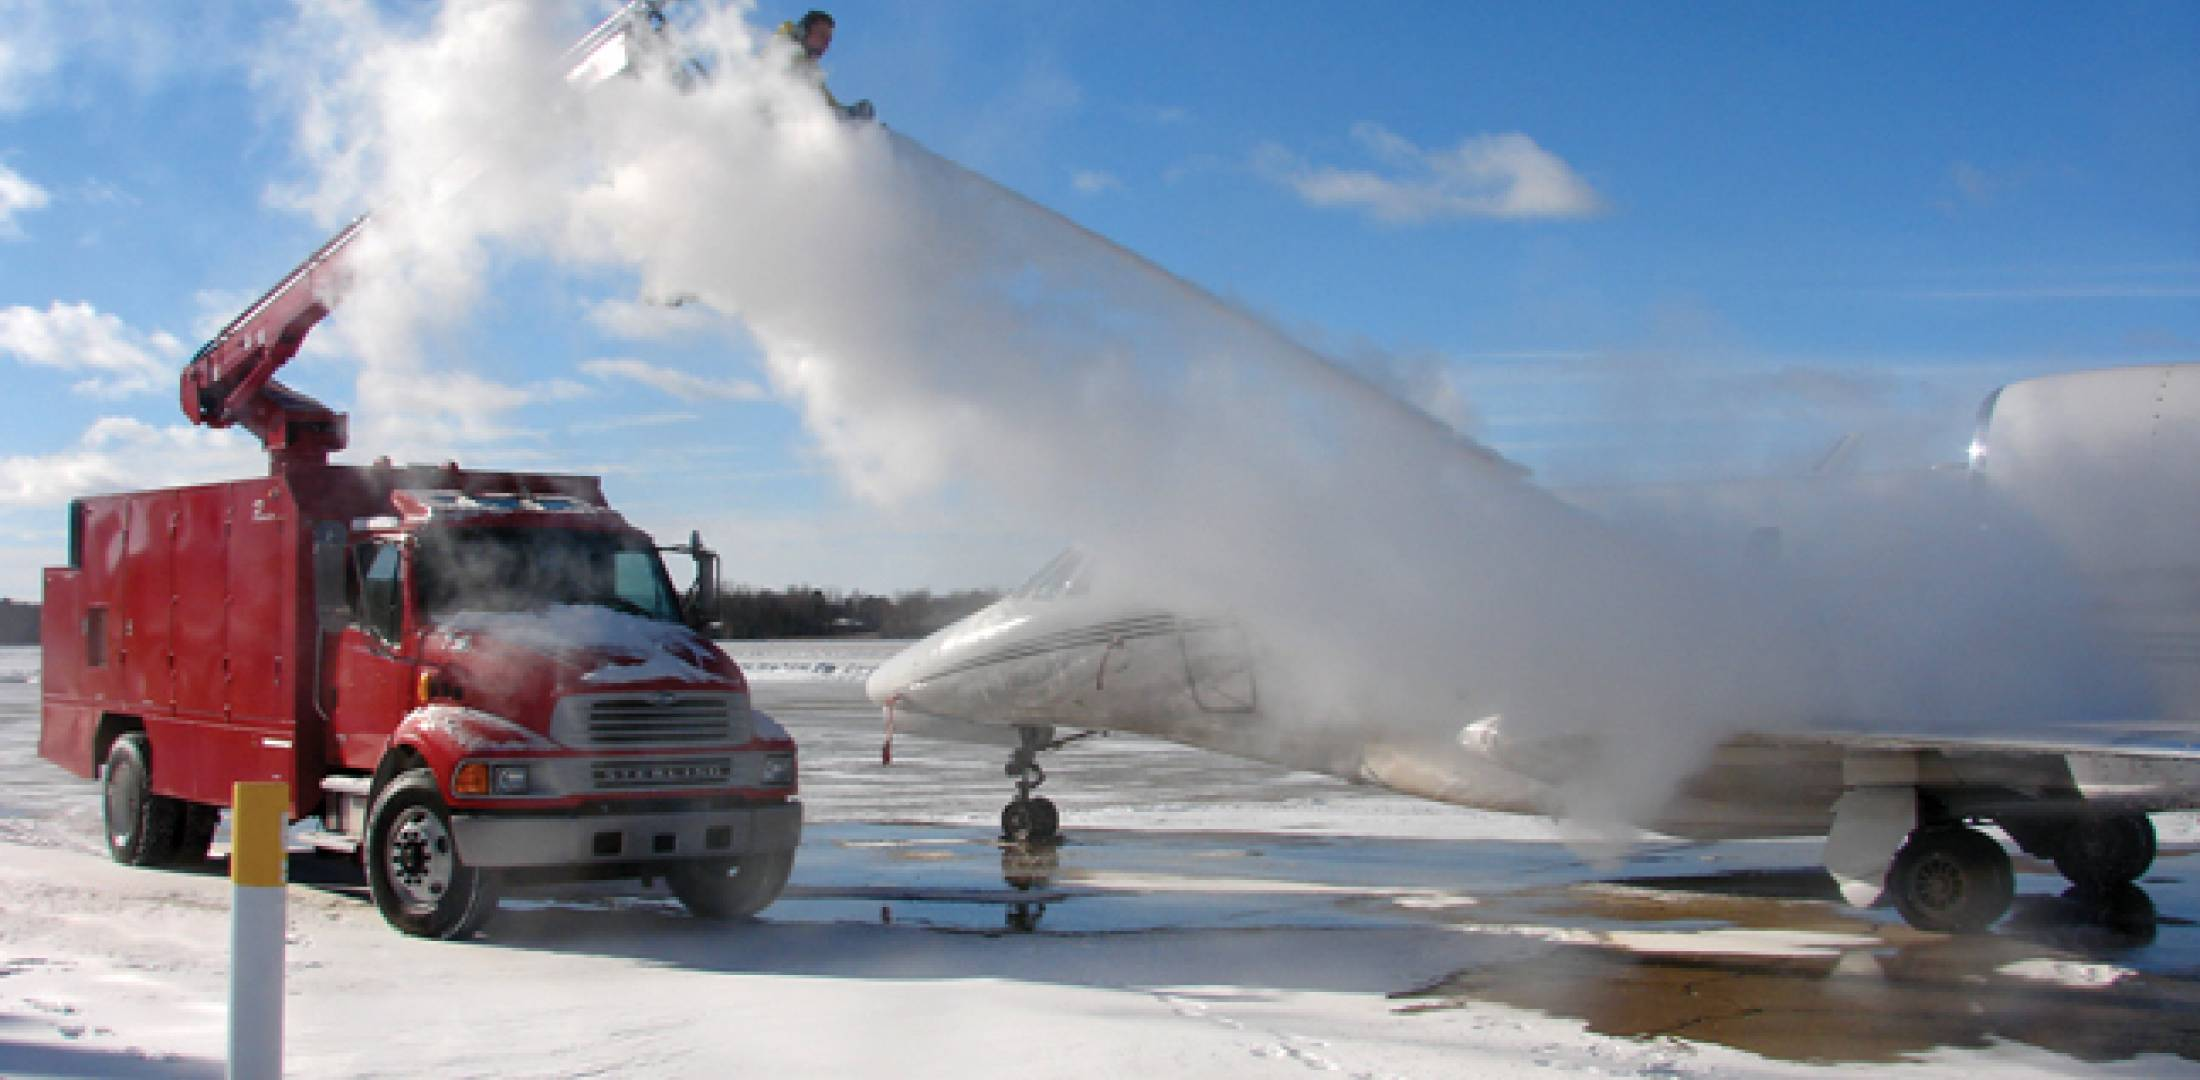 The potential for icing dangers begins on the ground, and several international organizations are working to standardize training, quality control and procedures to improve communication and safety.